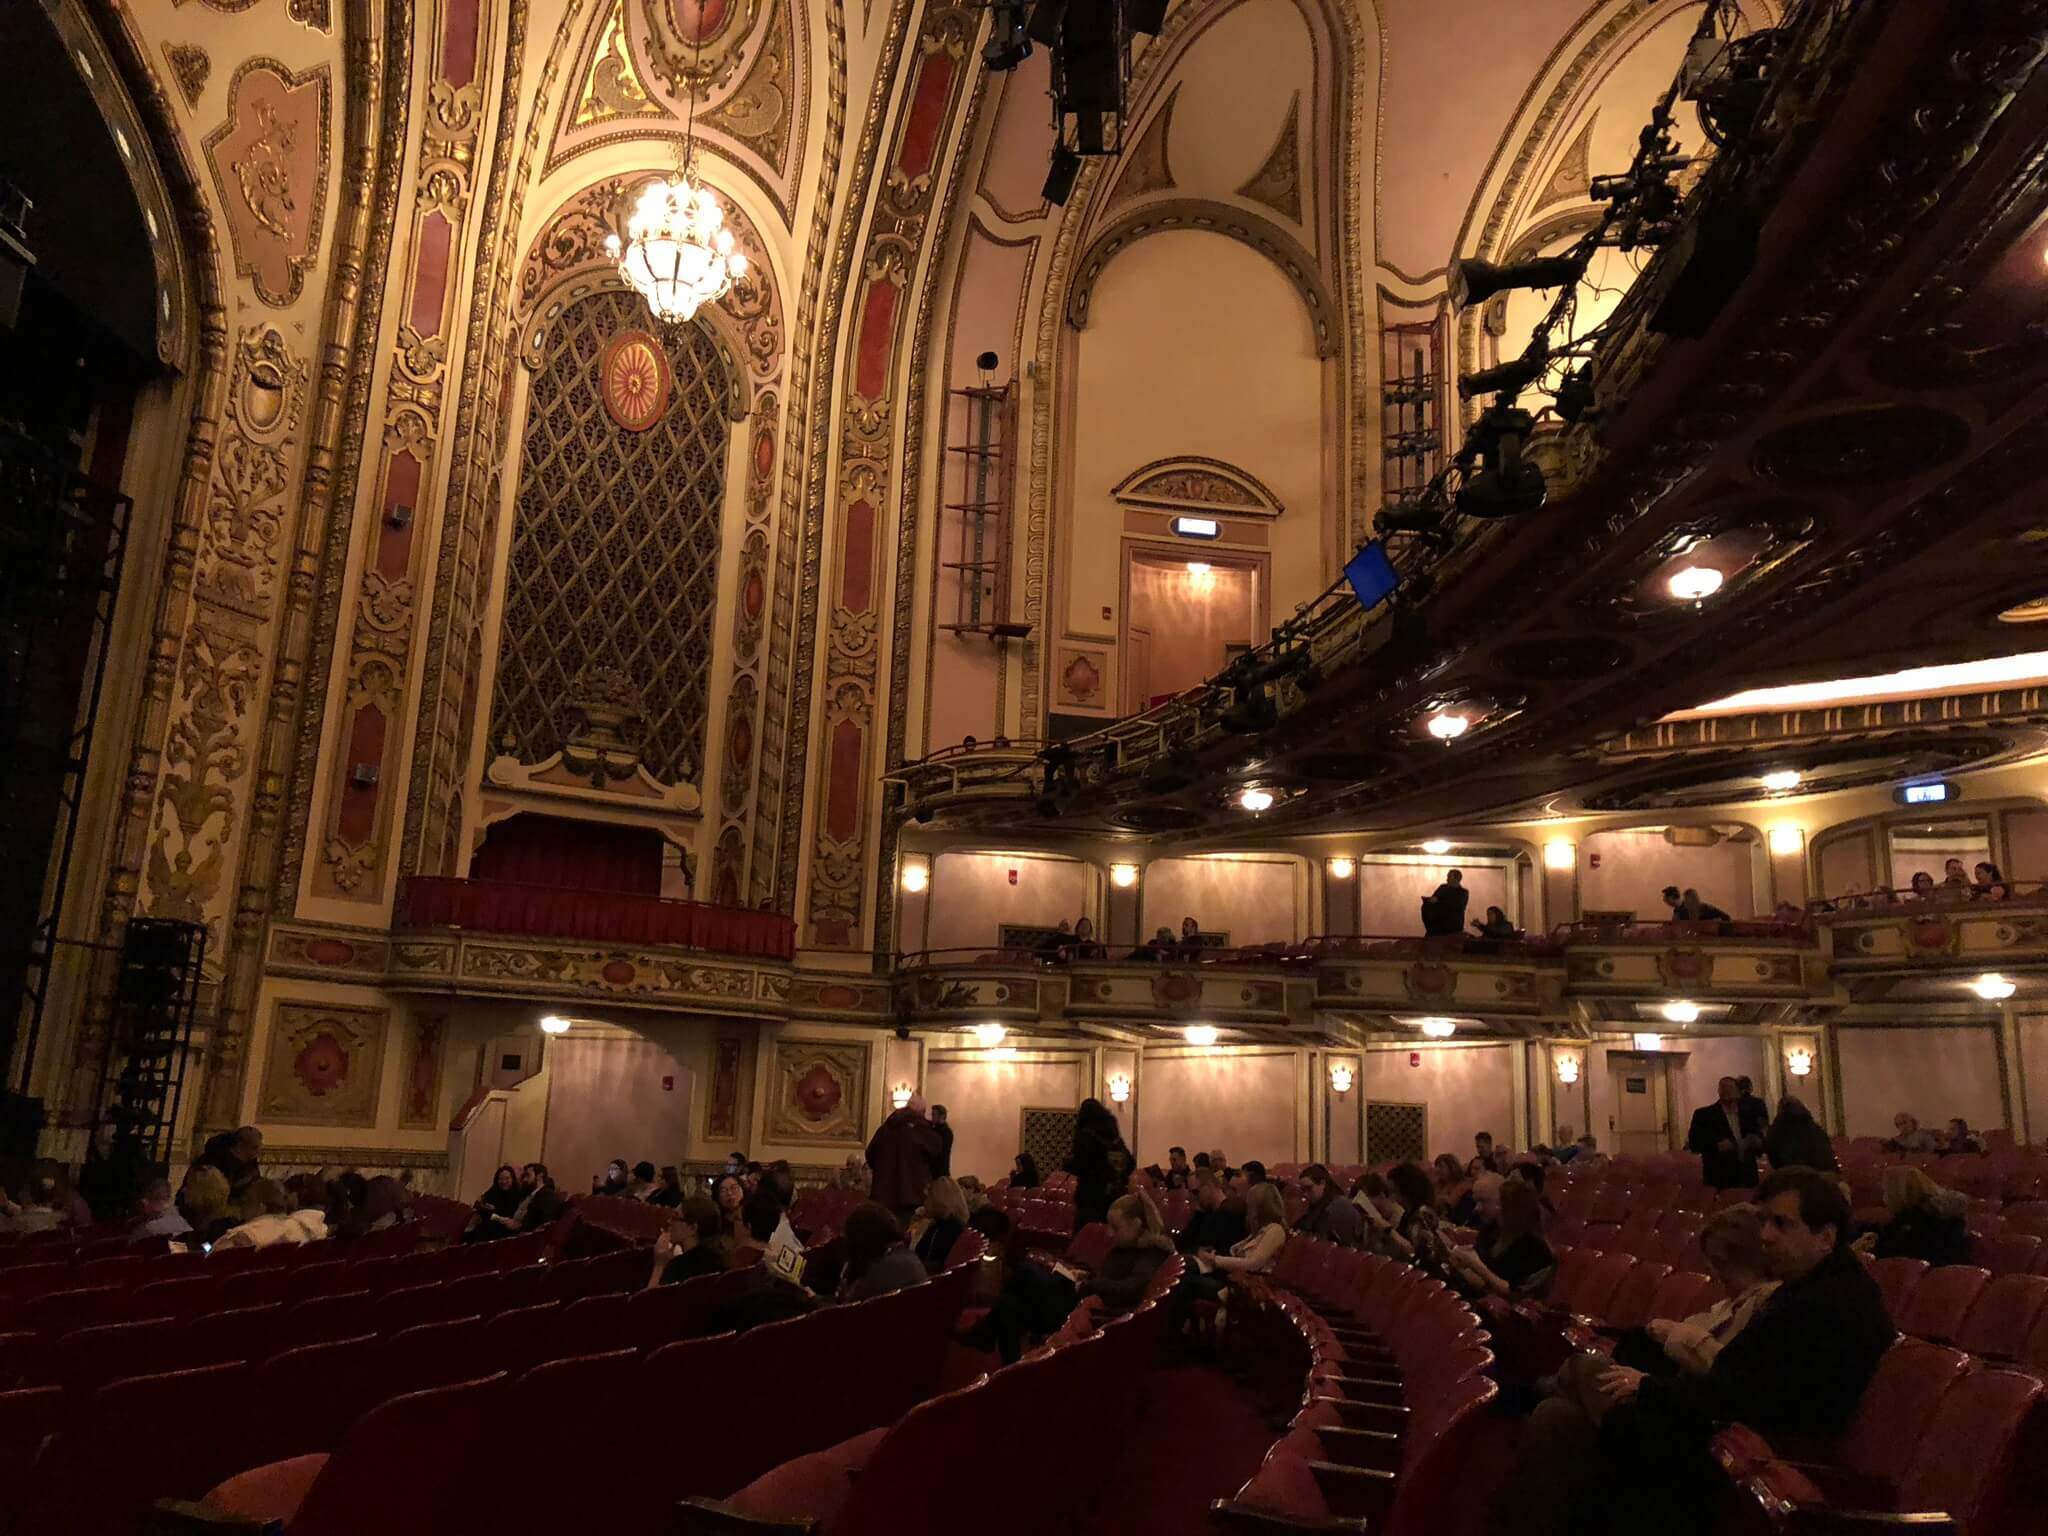 Inside the Cadillac Theater